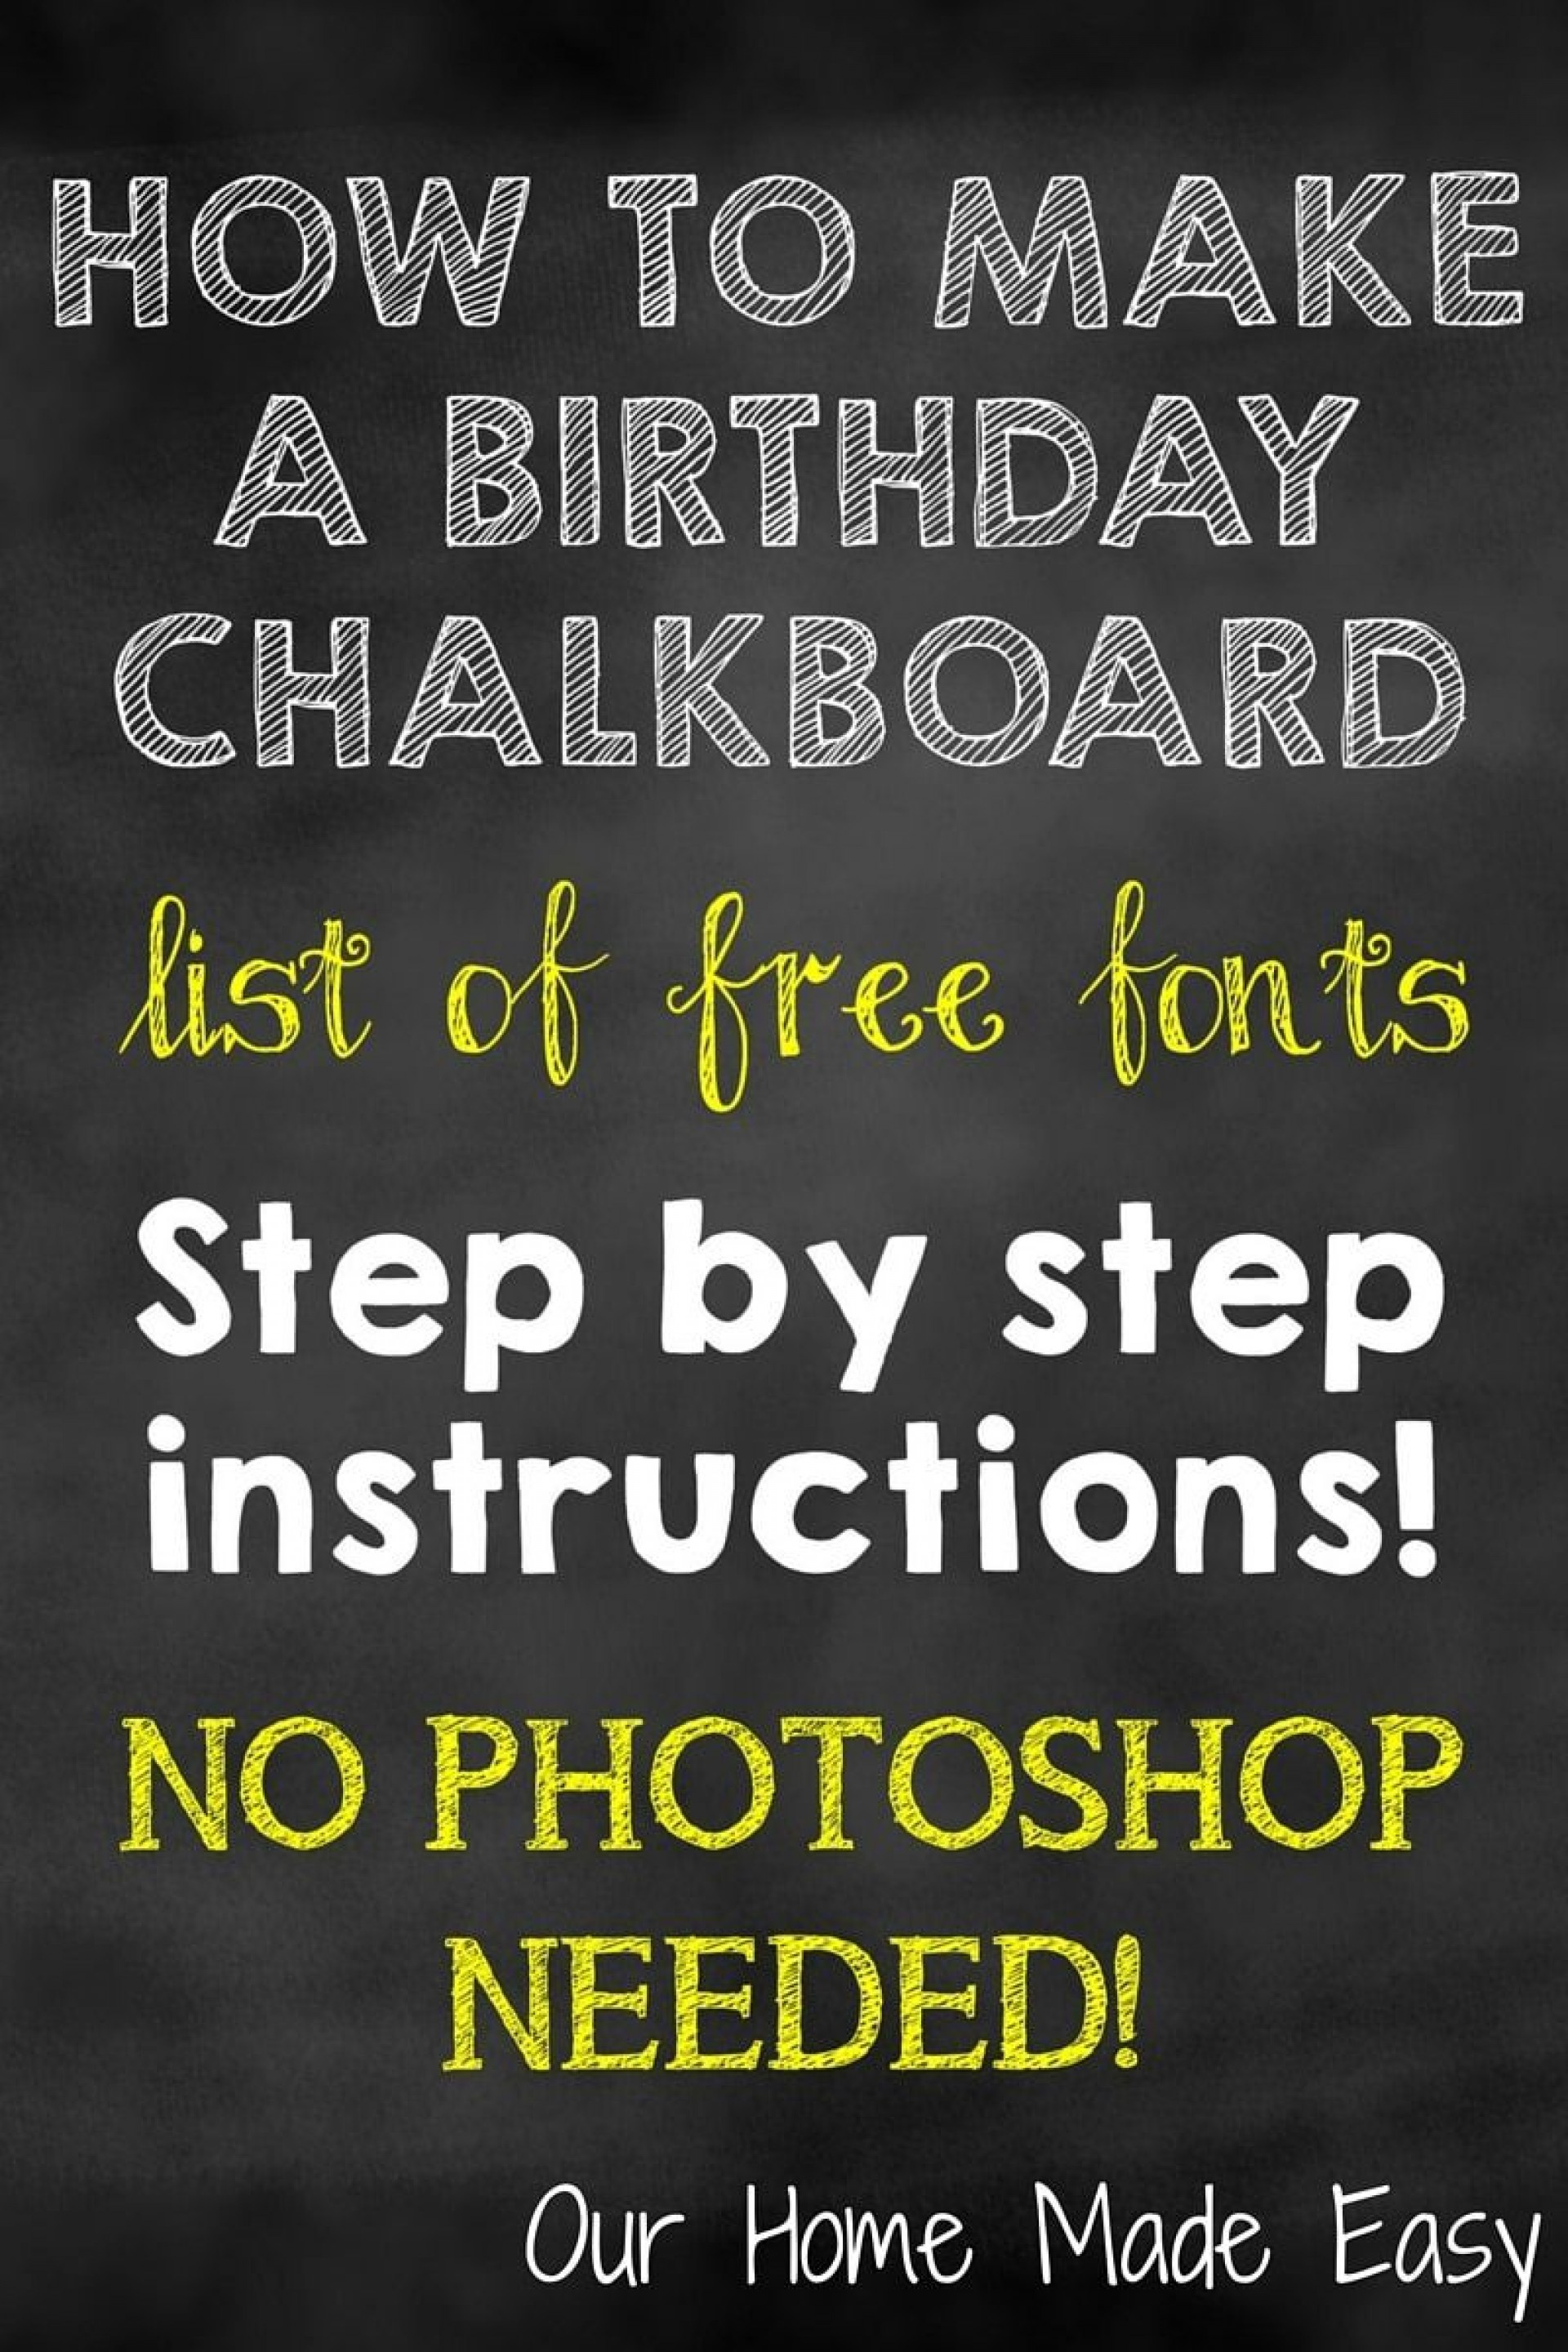 005 Phenomenal Free Birthday Chalkboard Template High Definition  First Printable Baby1920